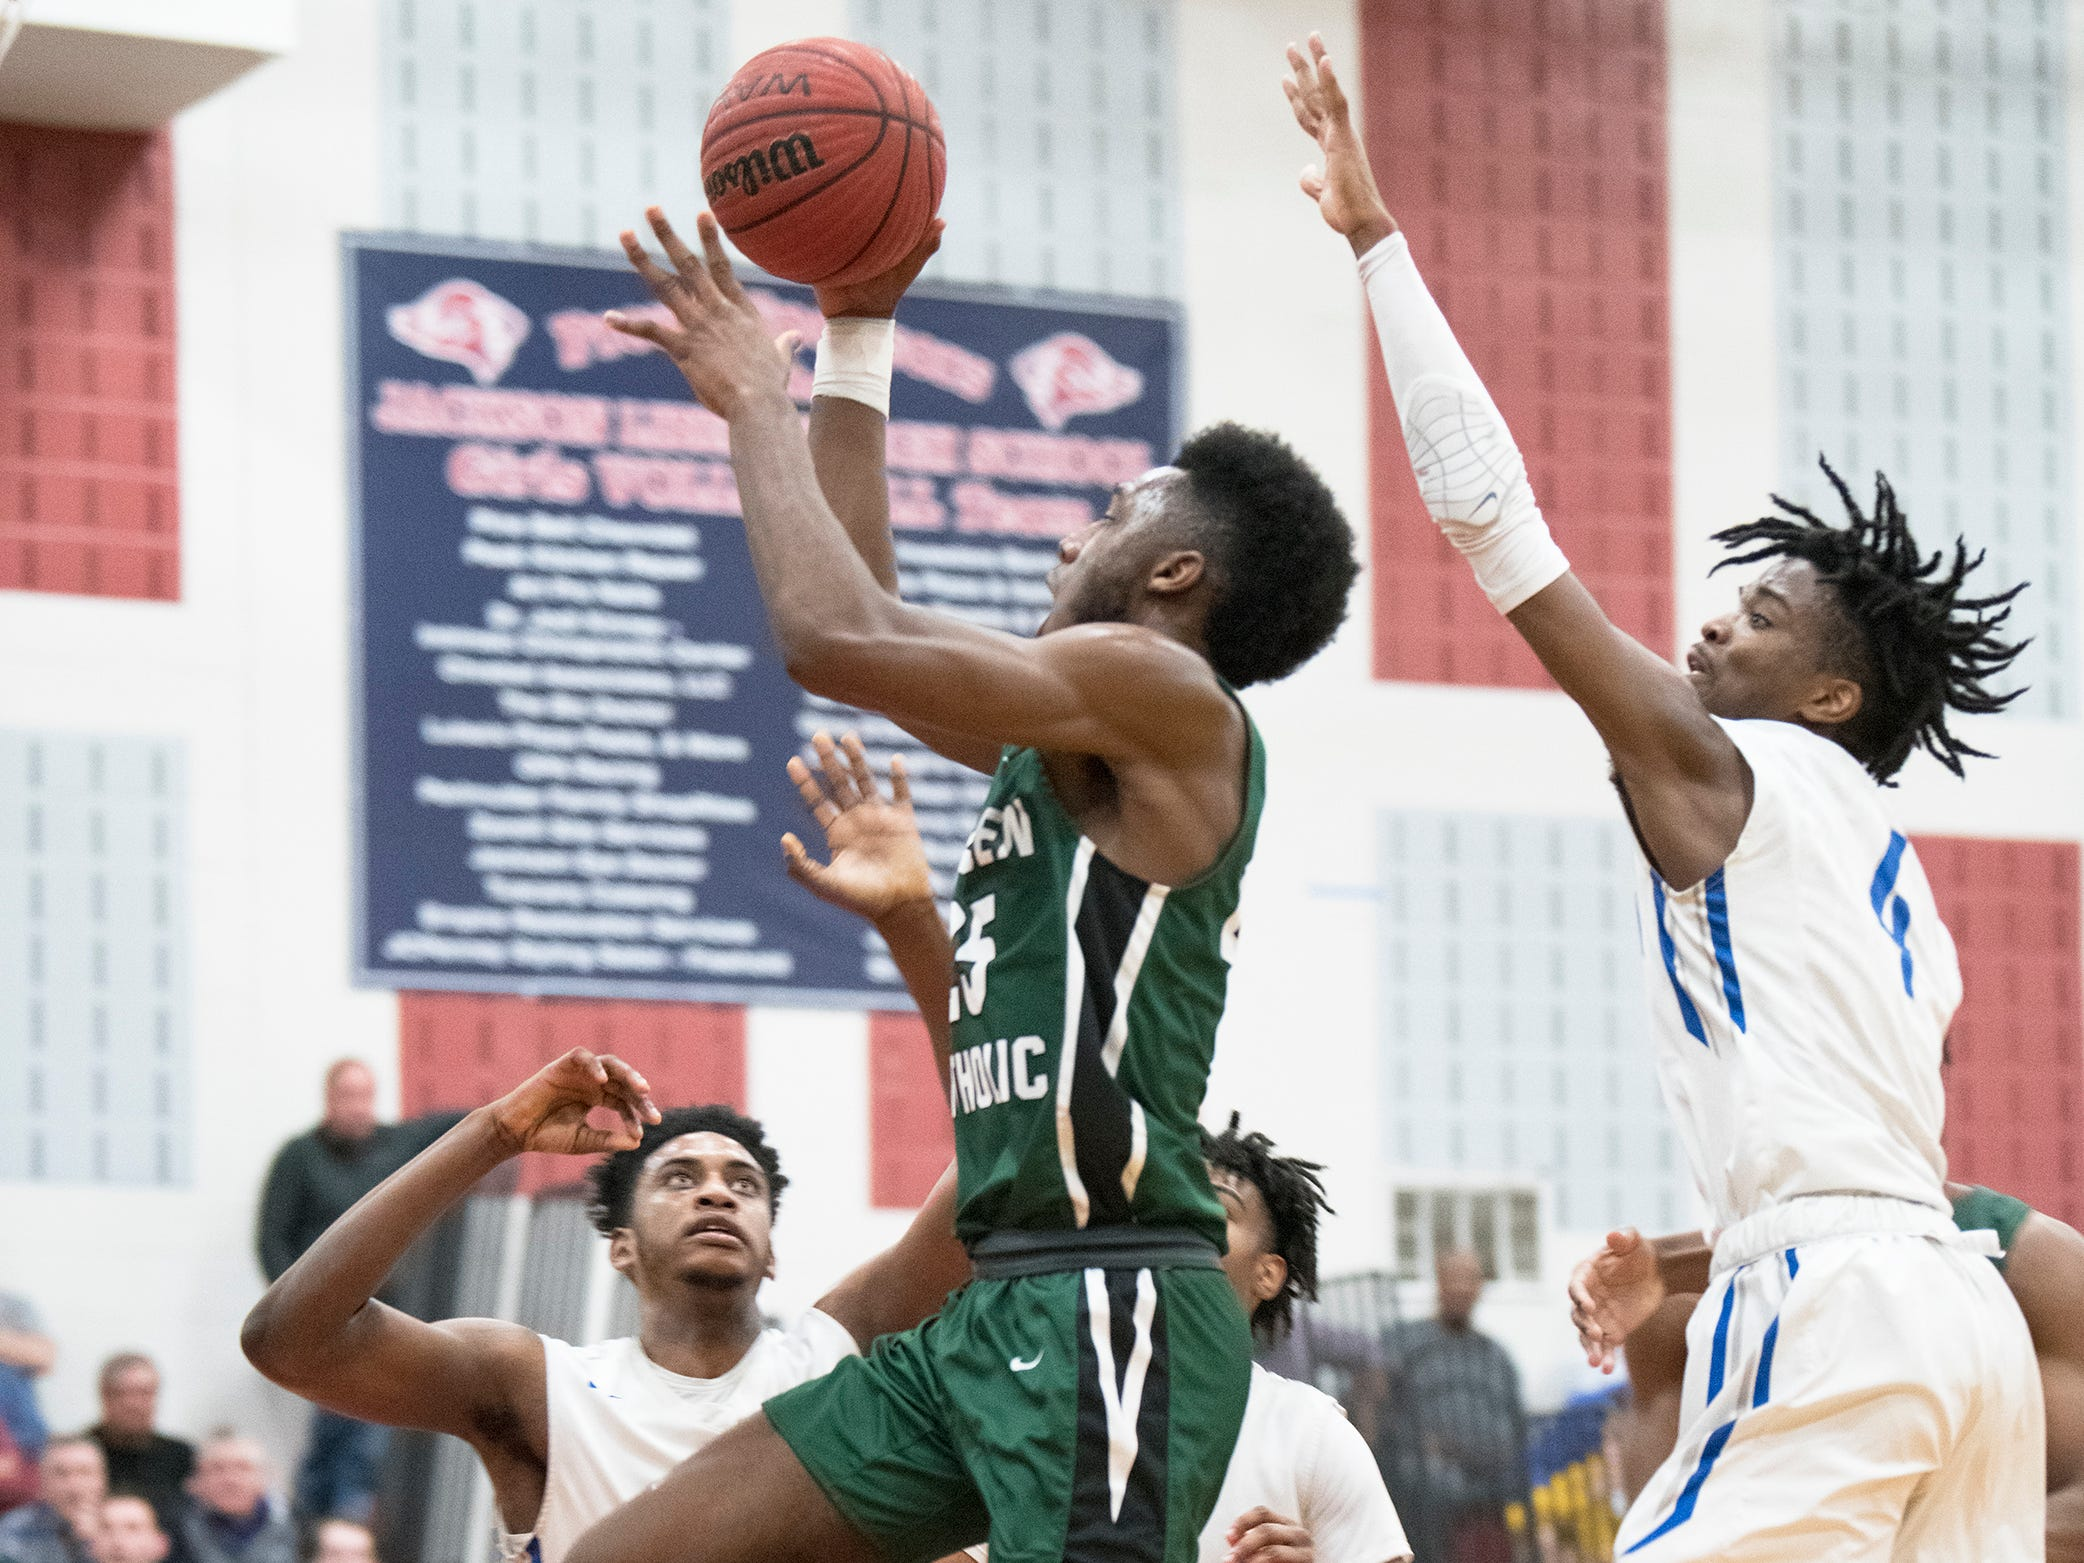 Camden Catholic's Babatunde Ajike puts up a shot during the 2nd half of the Non-Public A South boys basketball final between Camden Catholic and Paul VI played at Jackson Liberty High School on Tuesday, March 5, 2019.